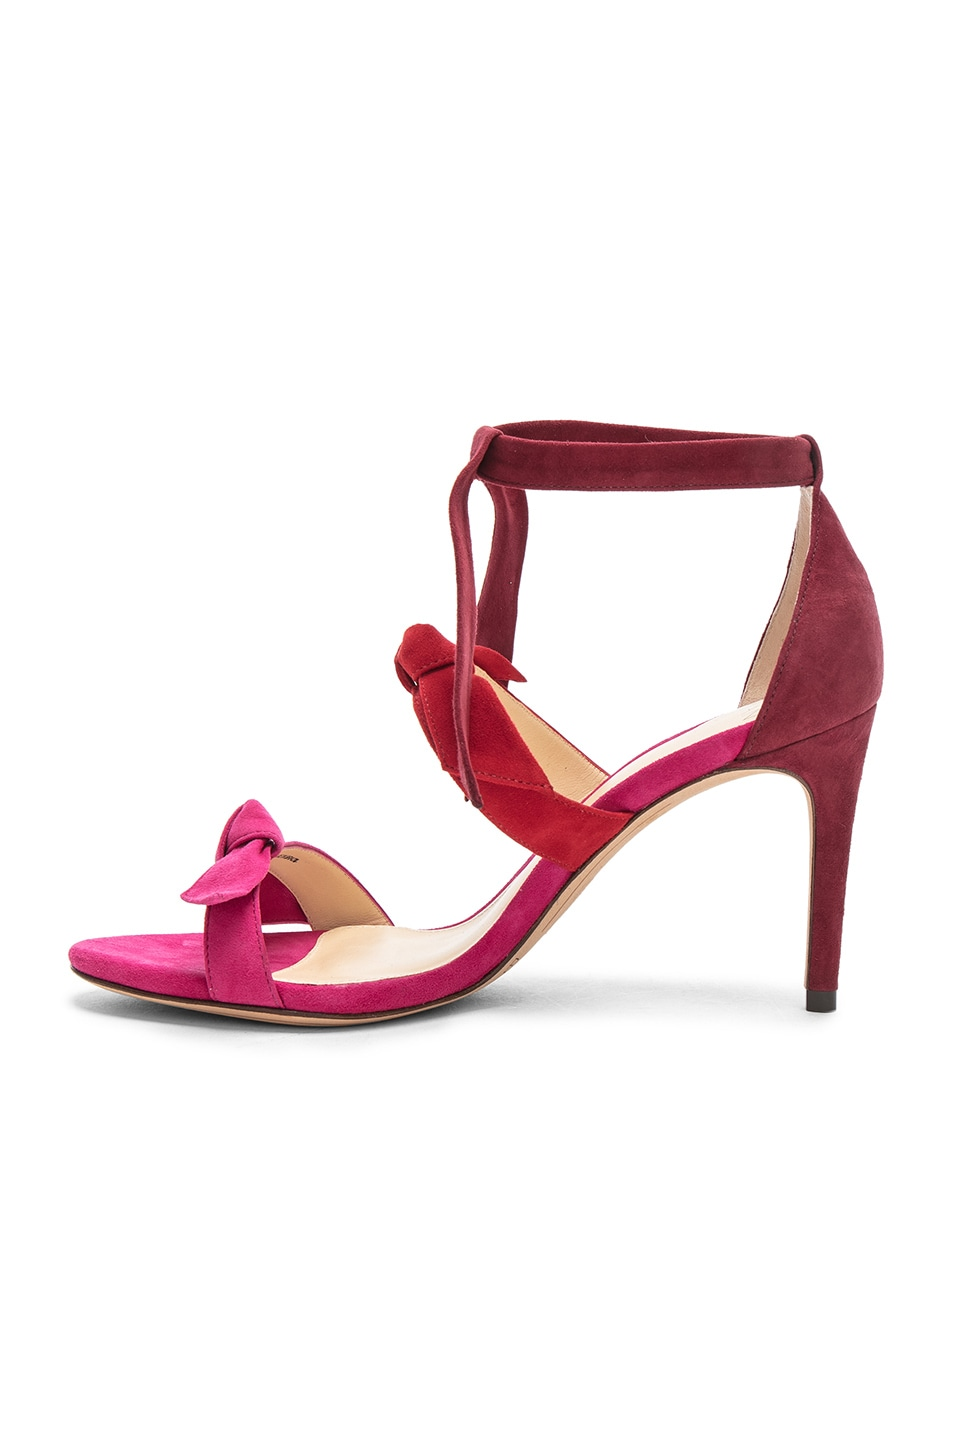 ALEXANDRE BIRMAN Suede Lolita Heels in Raspberry Flame & Rosewood Cheap Price Cost Exclusive Cheap Online Cheap Sale For Cheap DpUEZmj